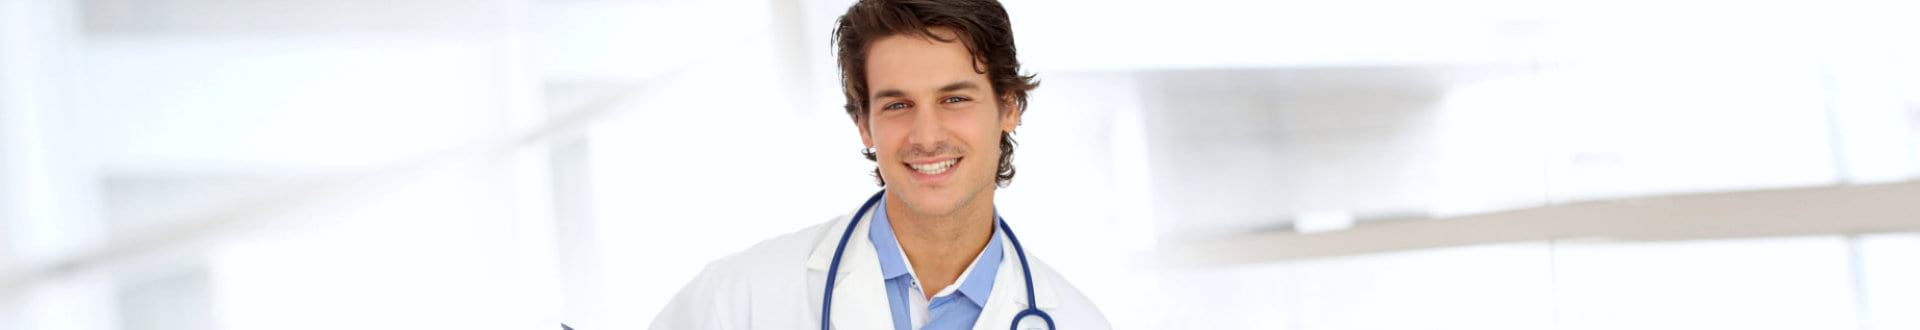 male doctor smiling